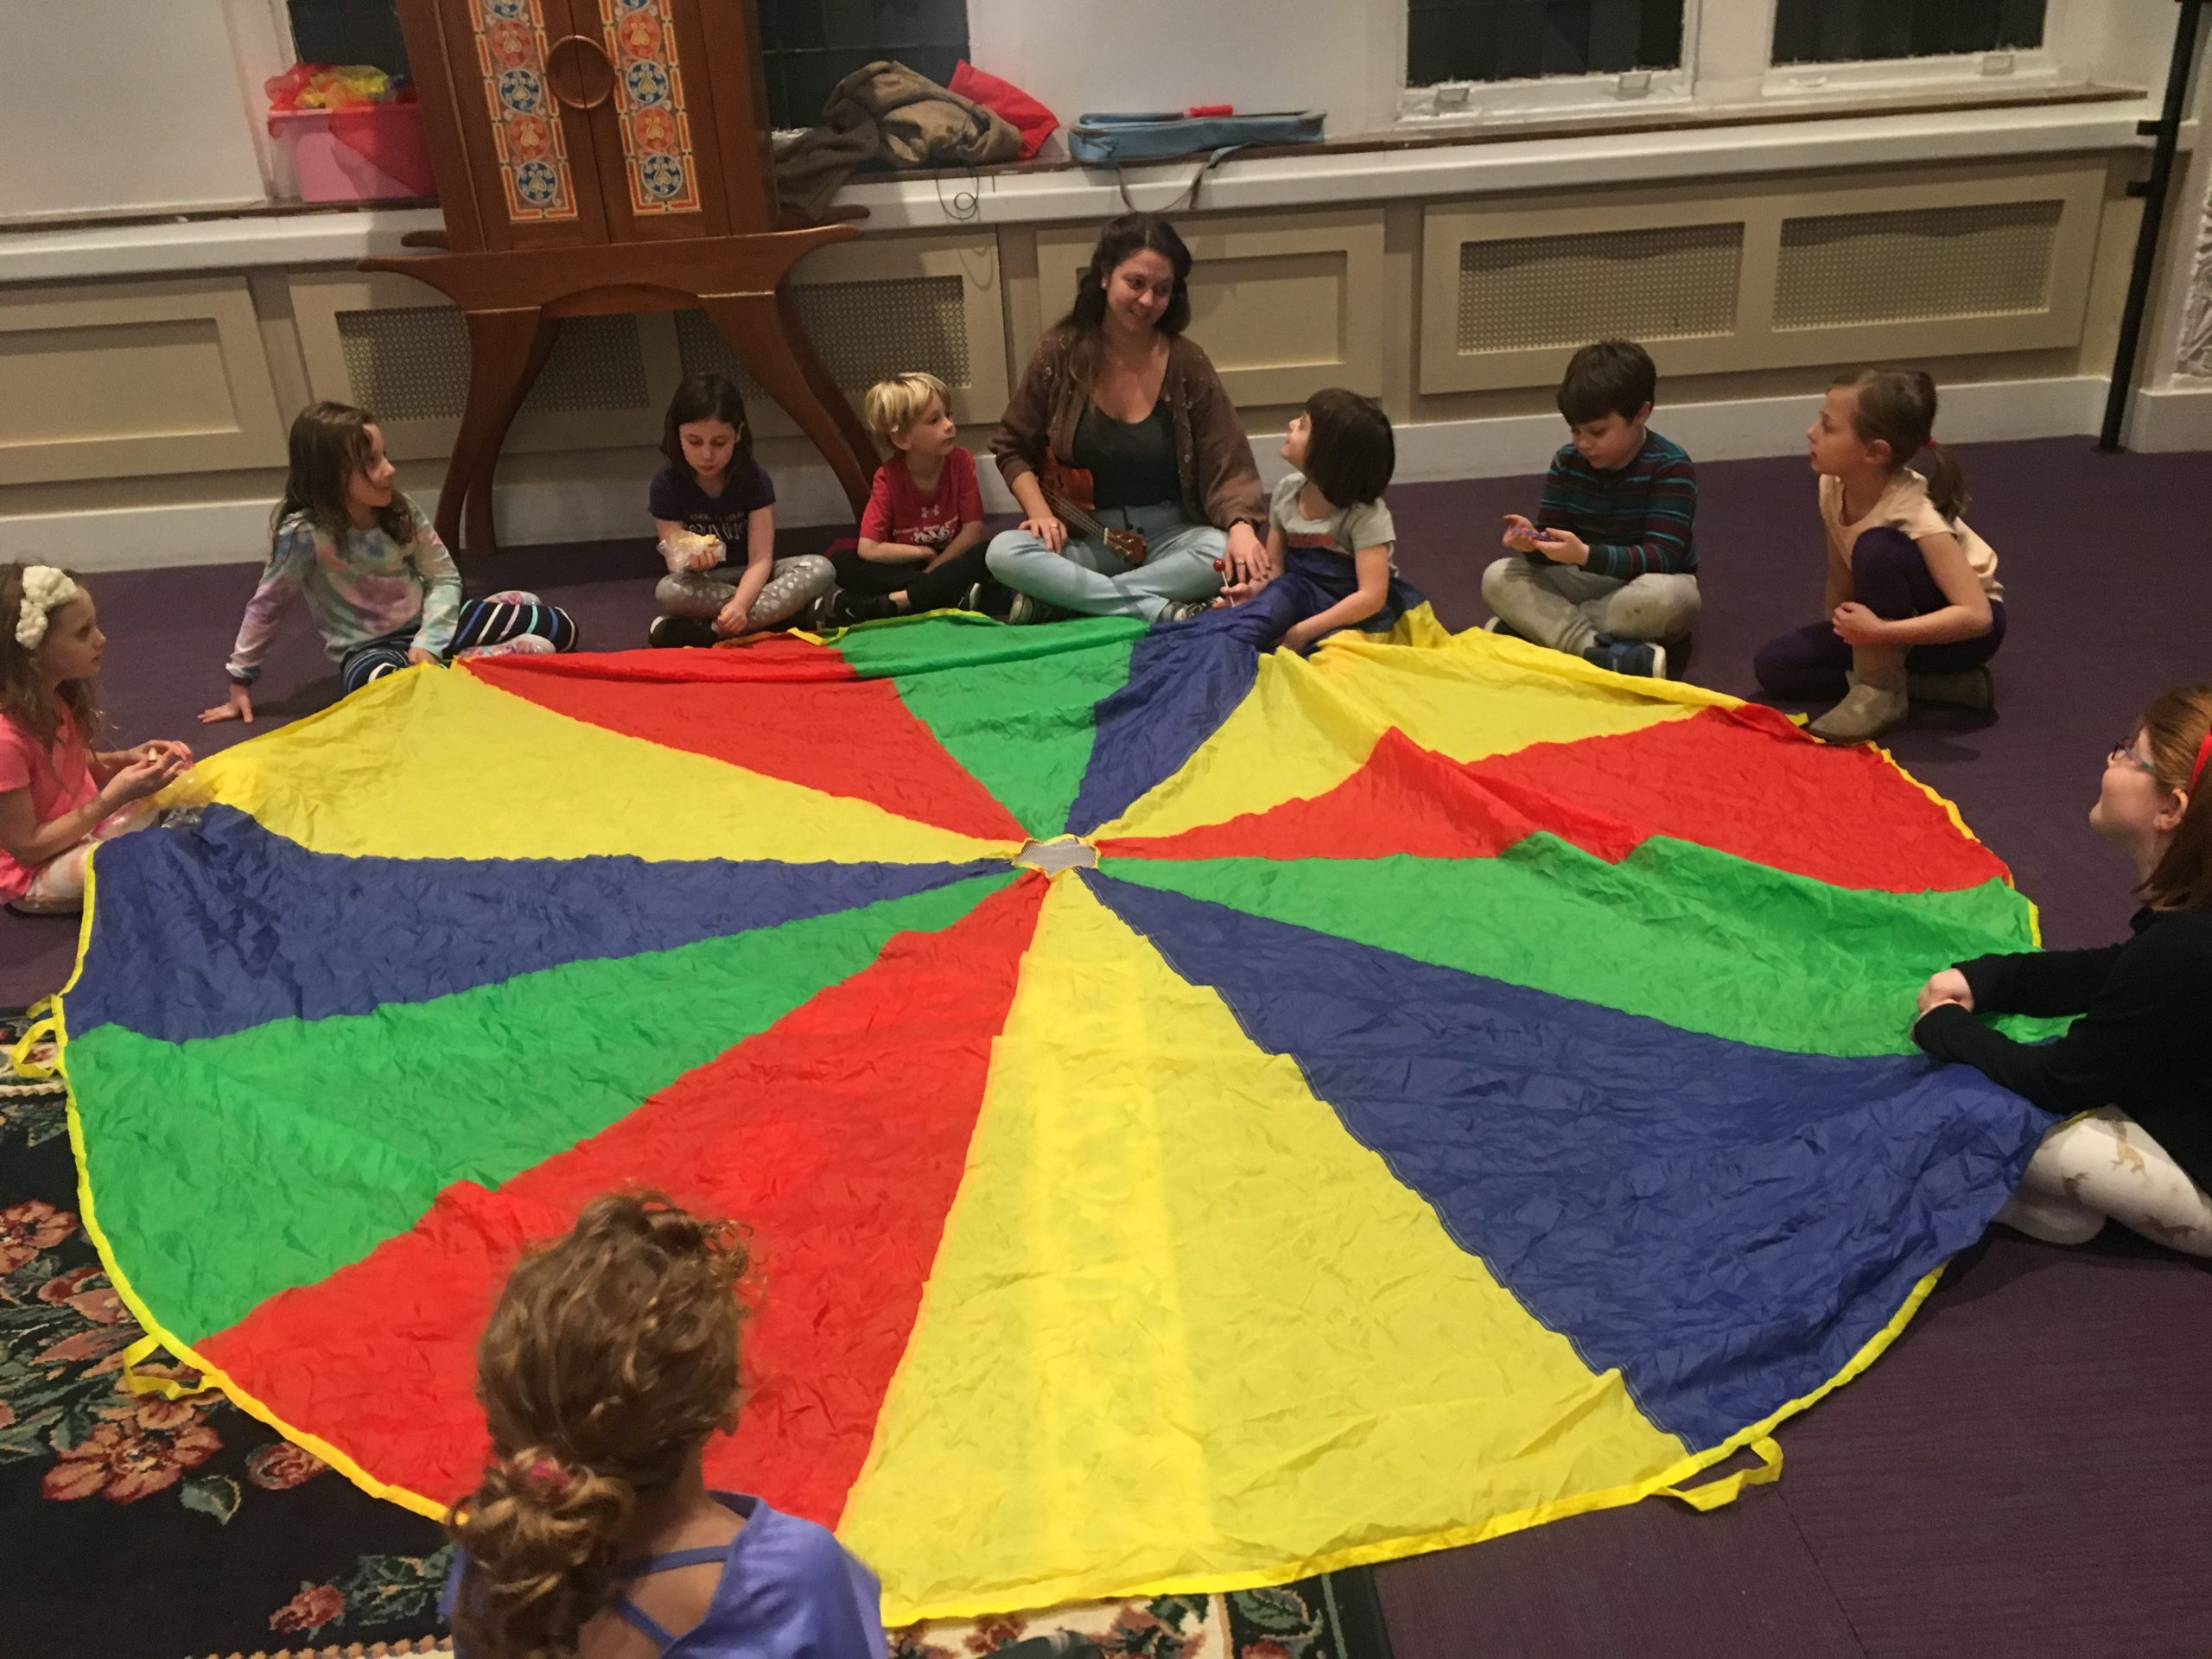 k-2nd graders playing with parachute